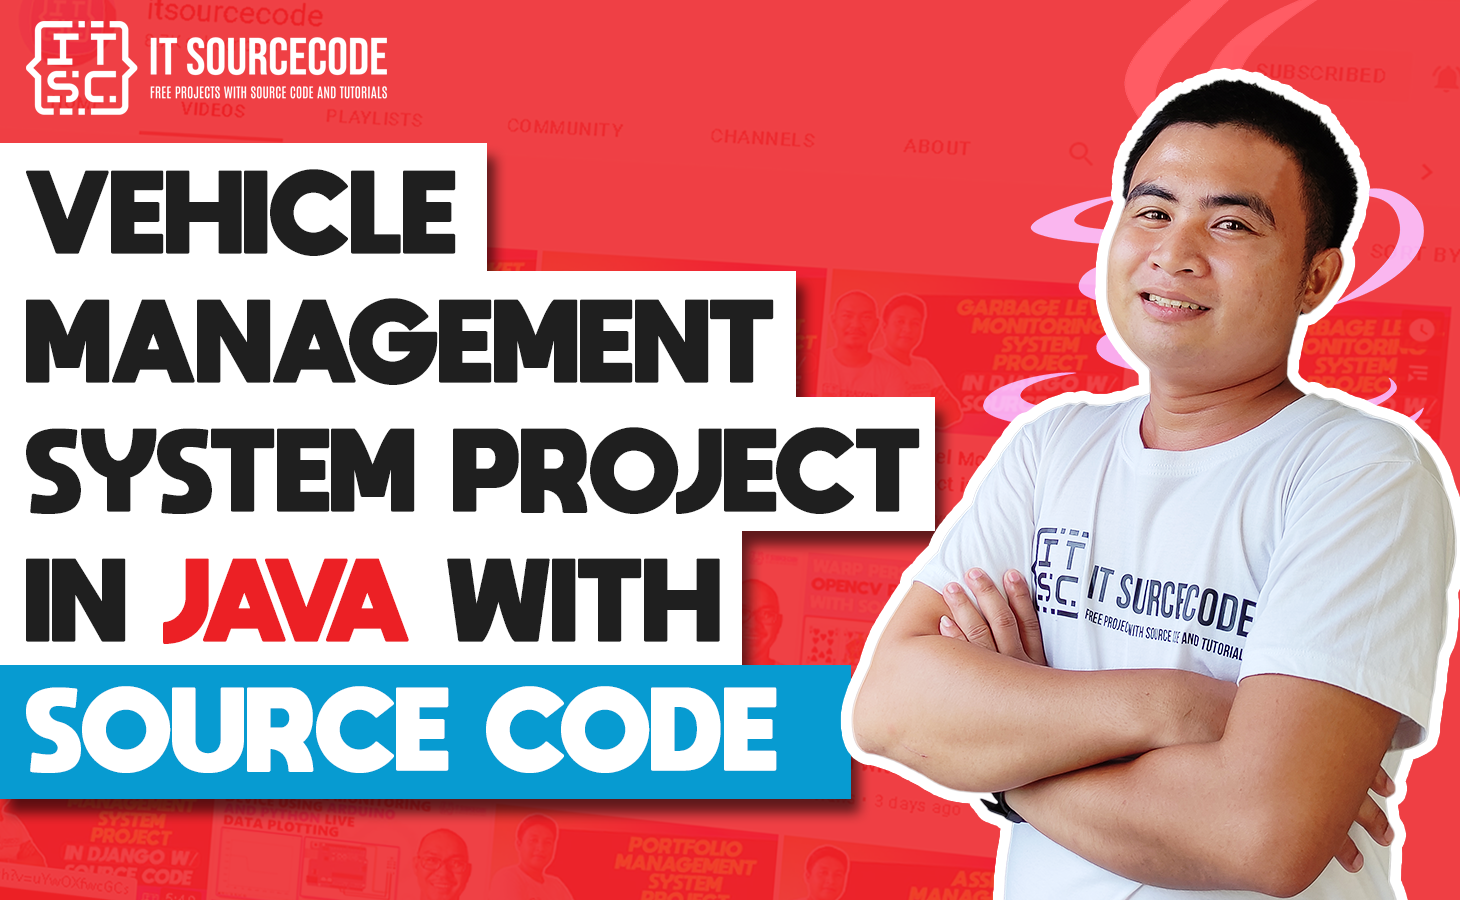 Vehicle Management System Project In Java With Source Code